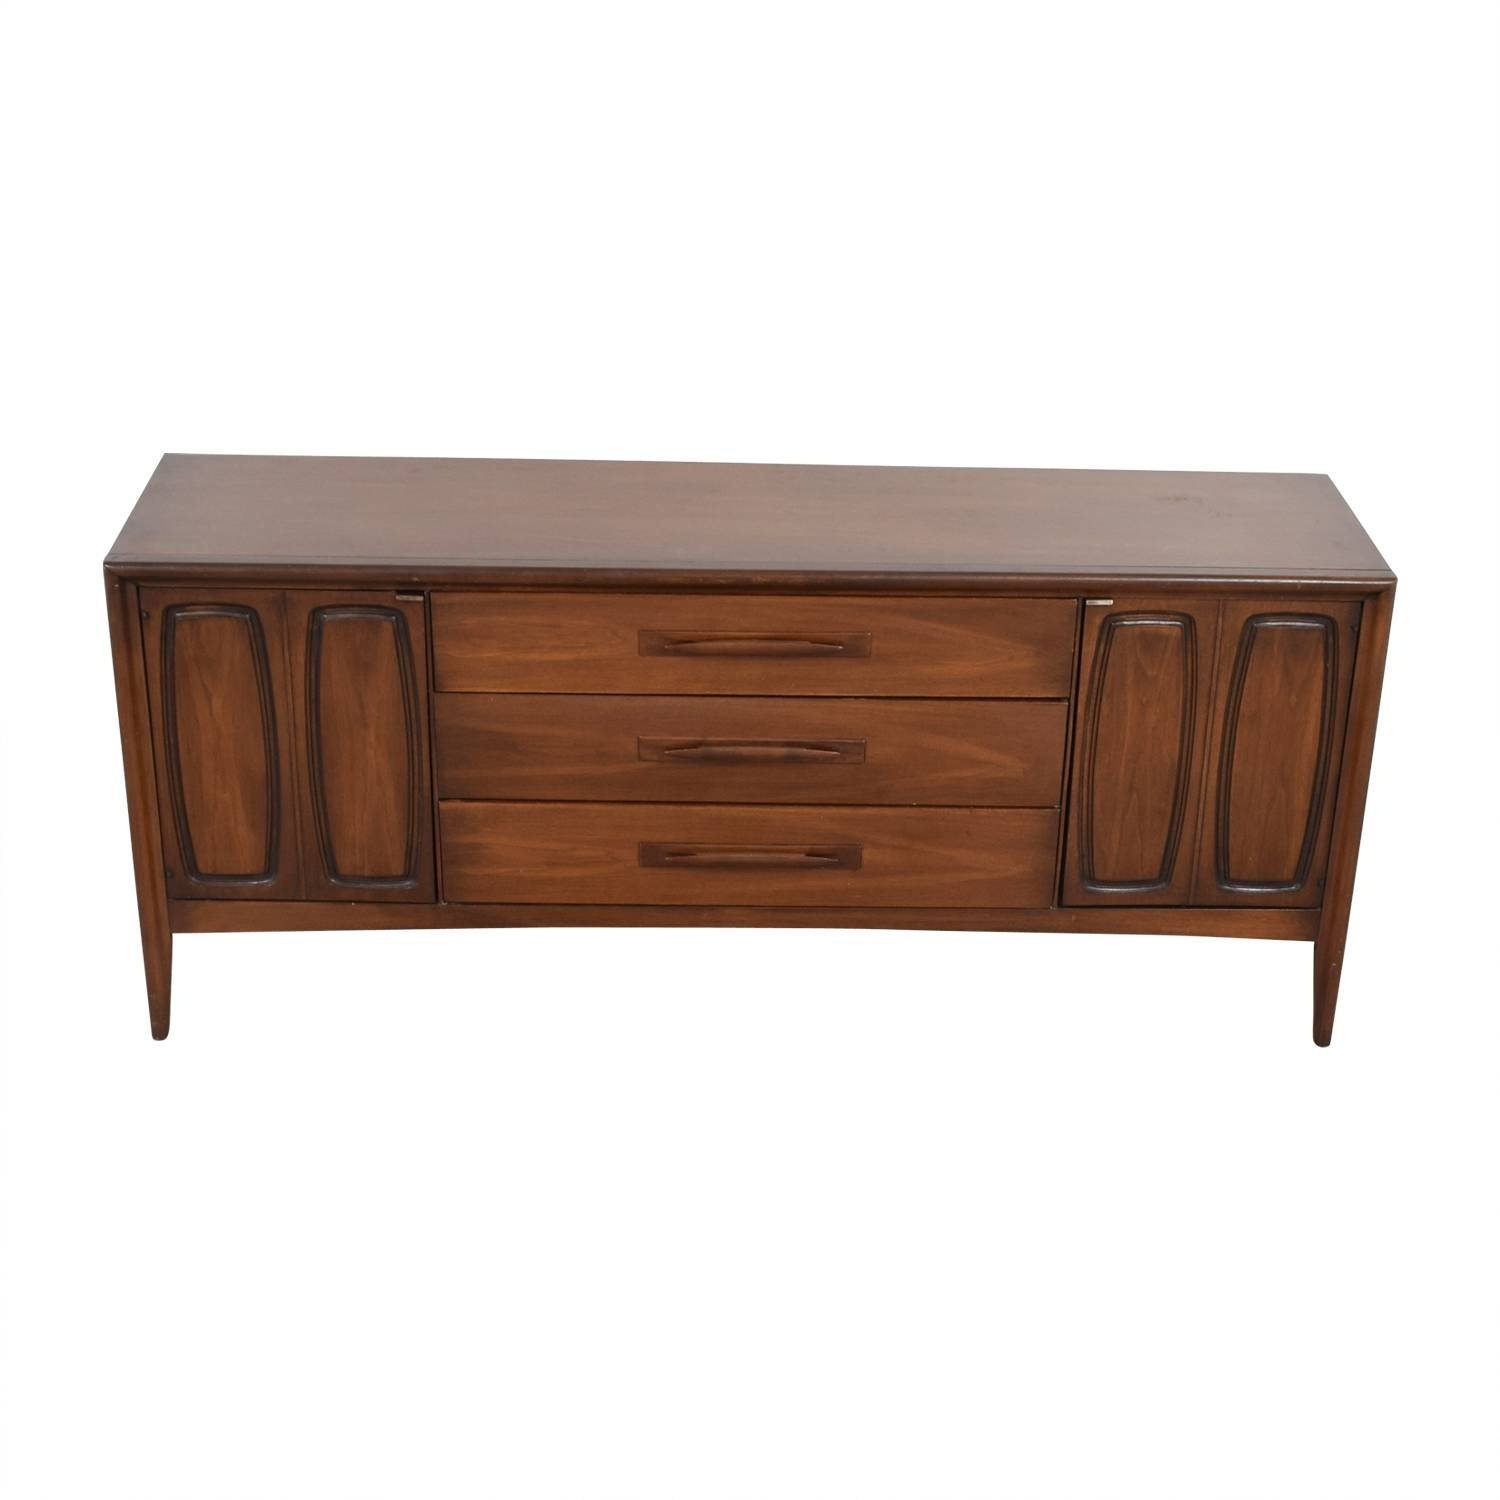 51% Off – Broyhill Broyhill Vintage Emphasis Mid Century Credenza Inside Media Sideboards (View 8 of 15)